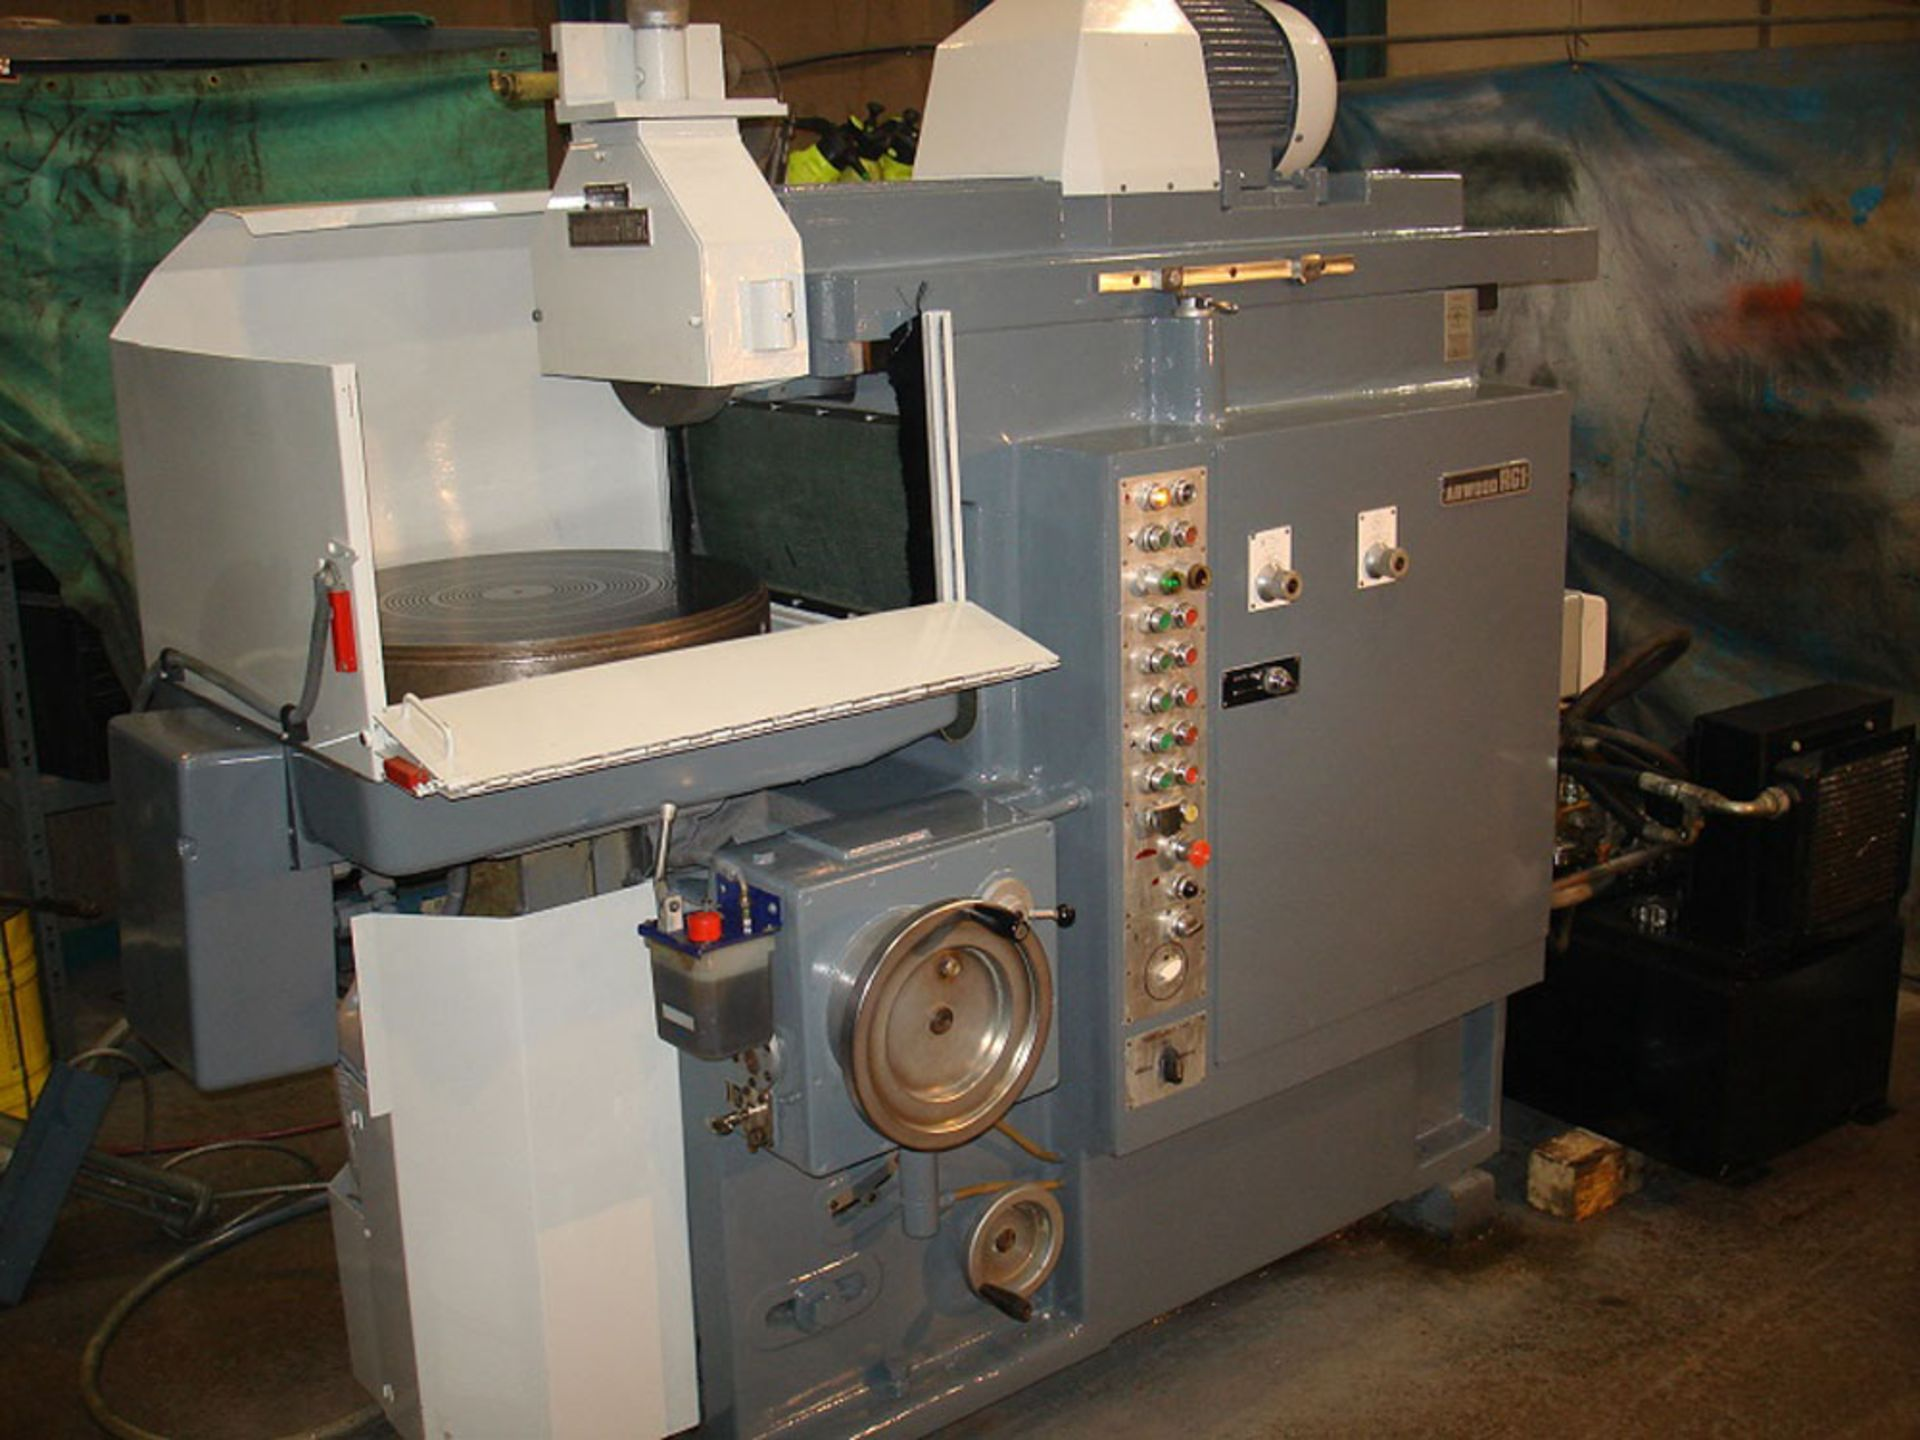 Abwood RG1 Rotary Table Surface Grinder. Magnet Diameter 600mm.